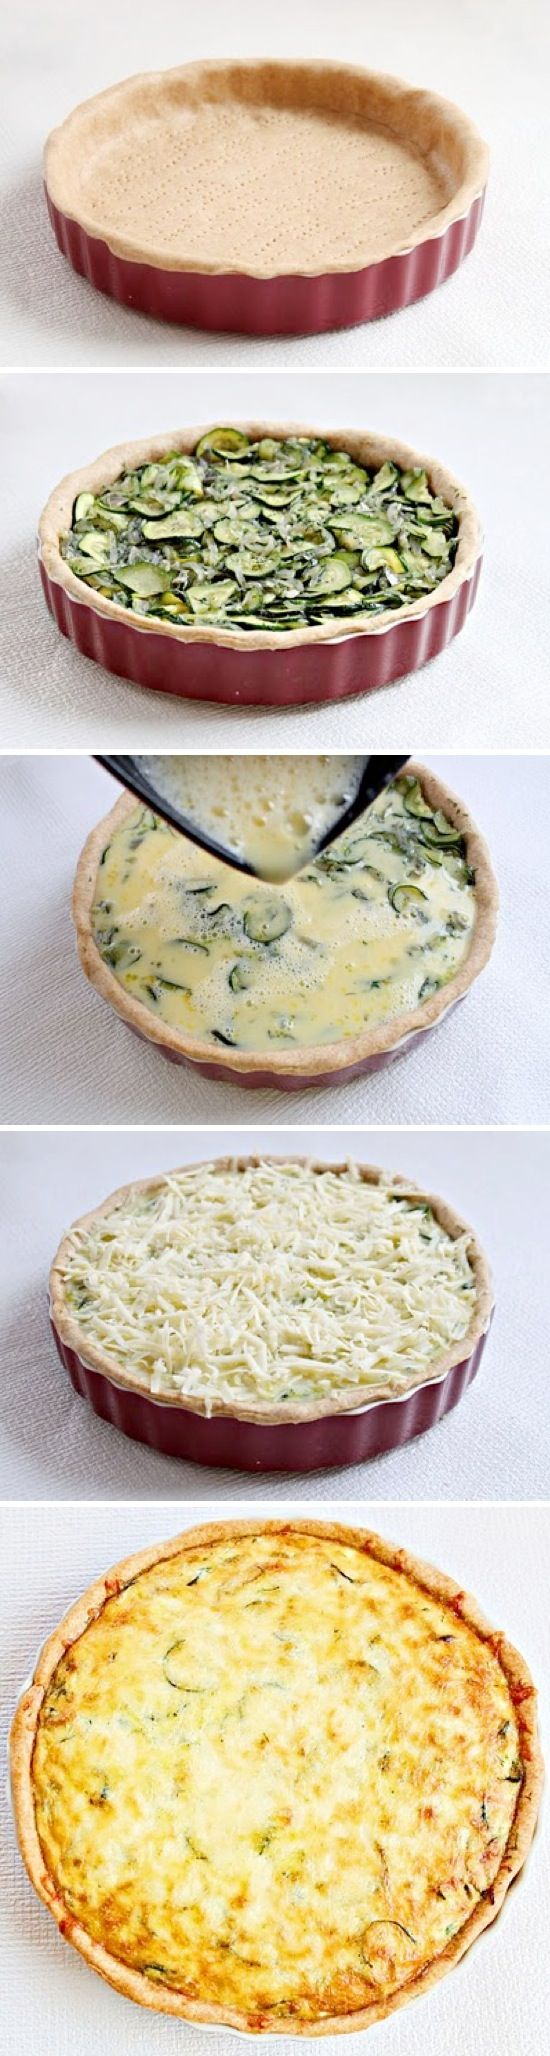 Zucchini Quiche | Recipe By Photo